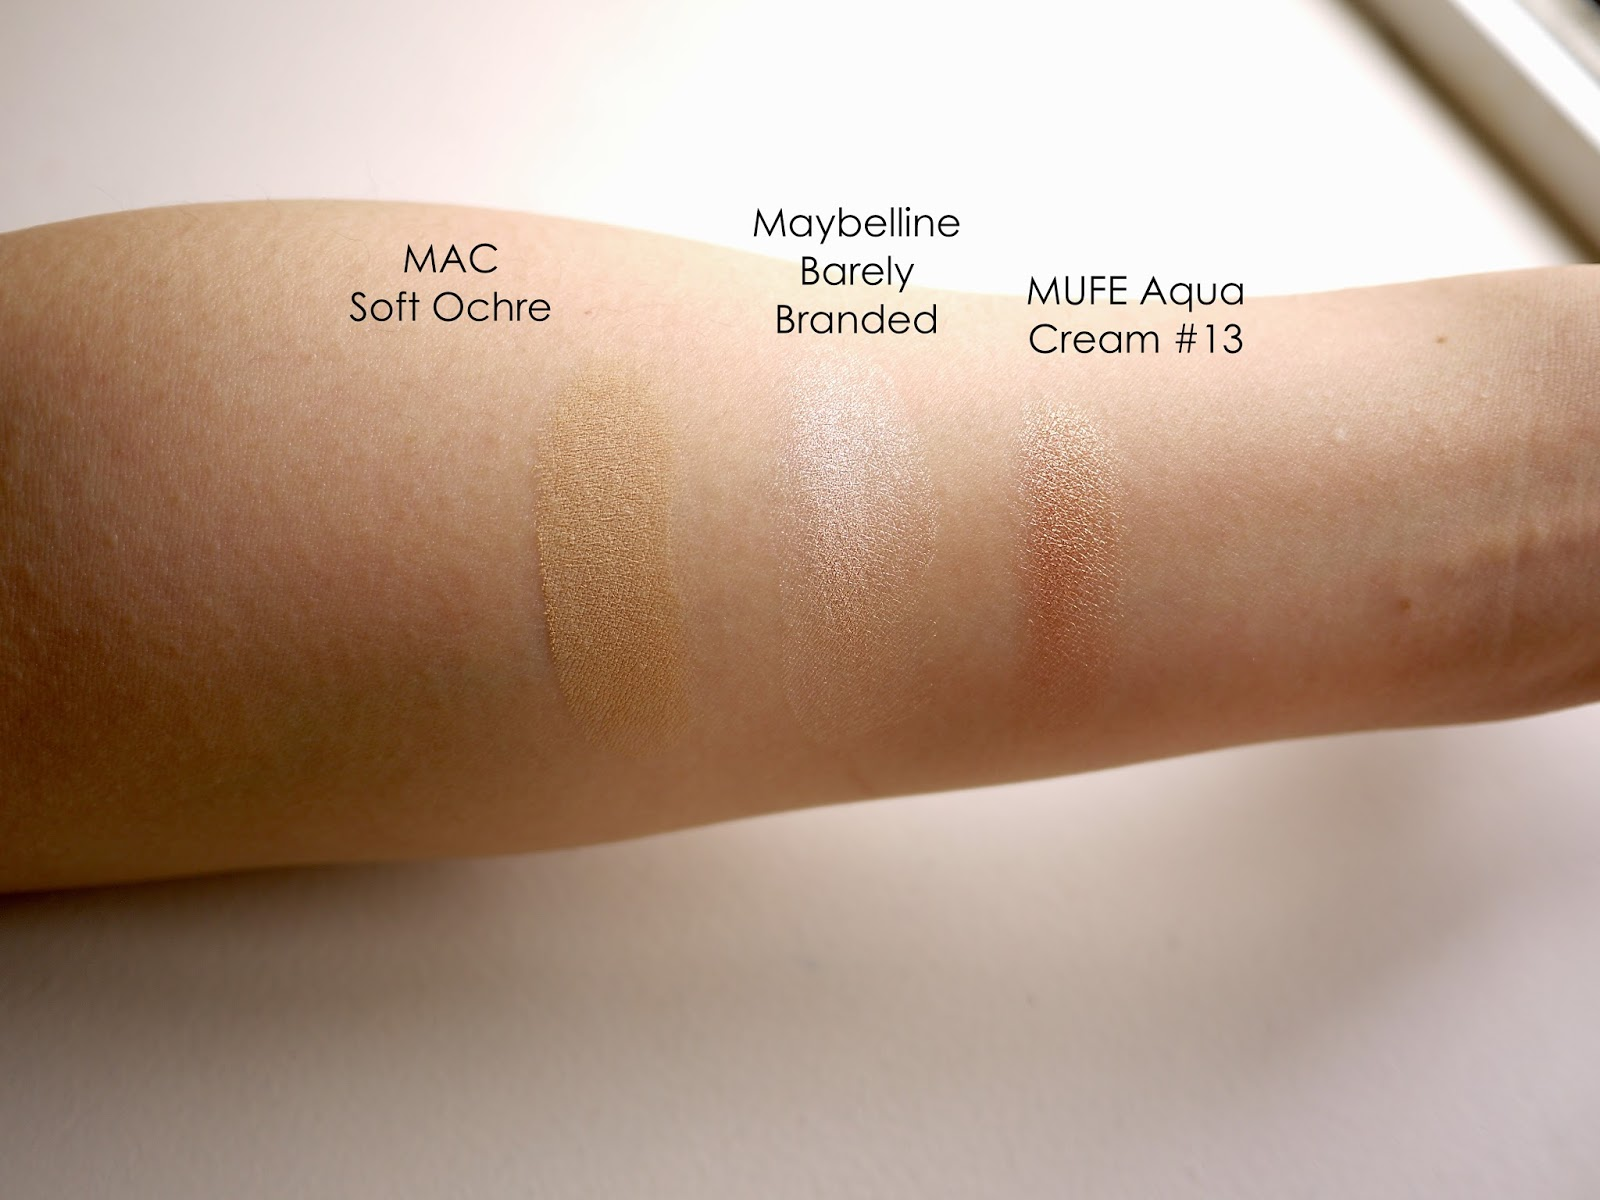 eyeshadow base mac soft ochre maybelline barely branded make up for ever aqua cream 13